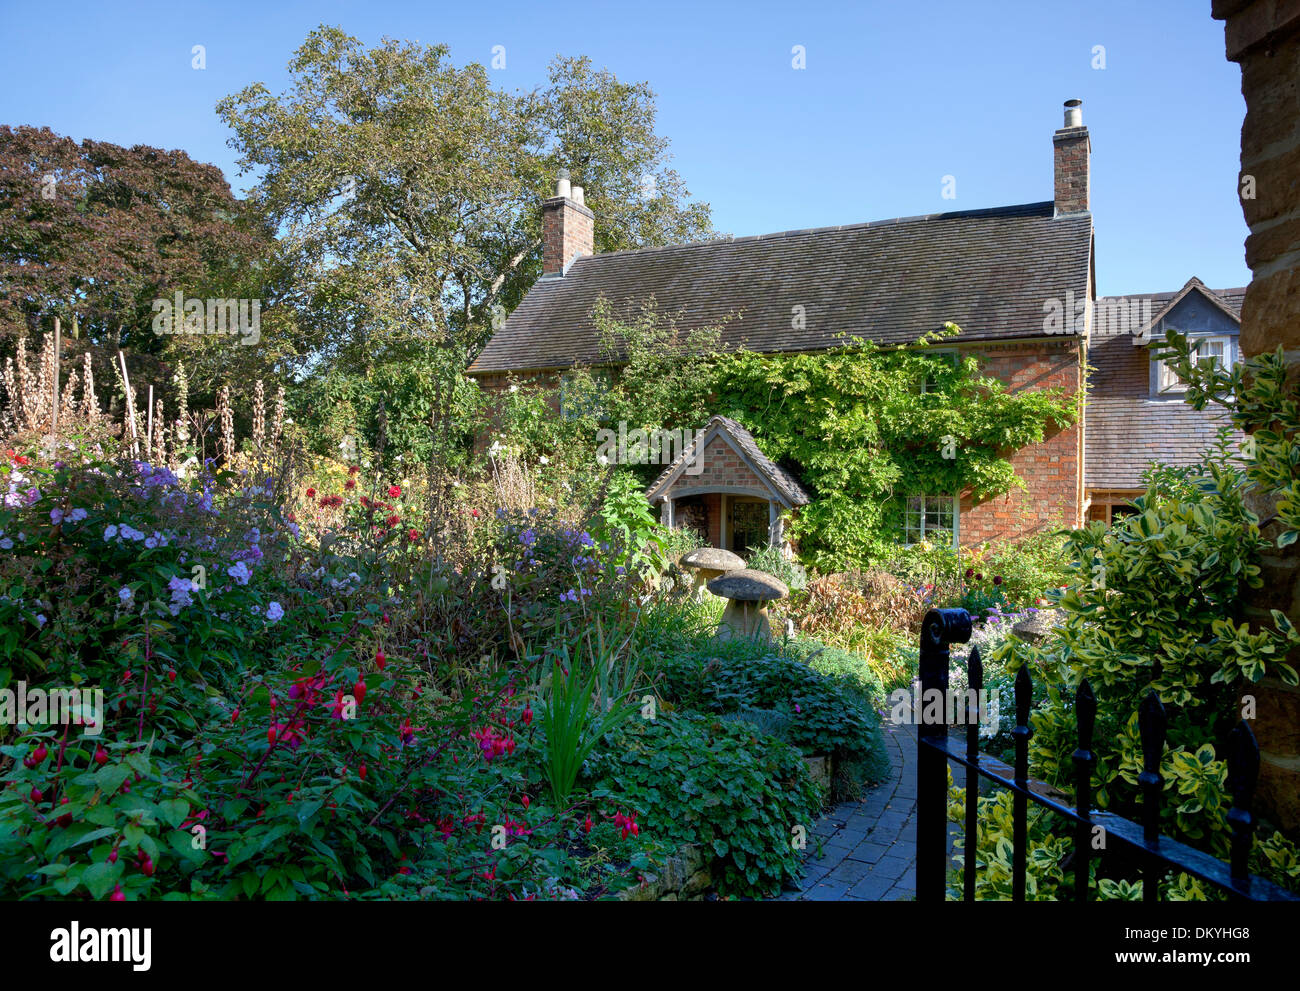 Pretty cottage with garden full of flowers, Warwickshire, England. - Stock Image